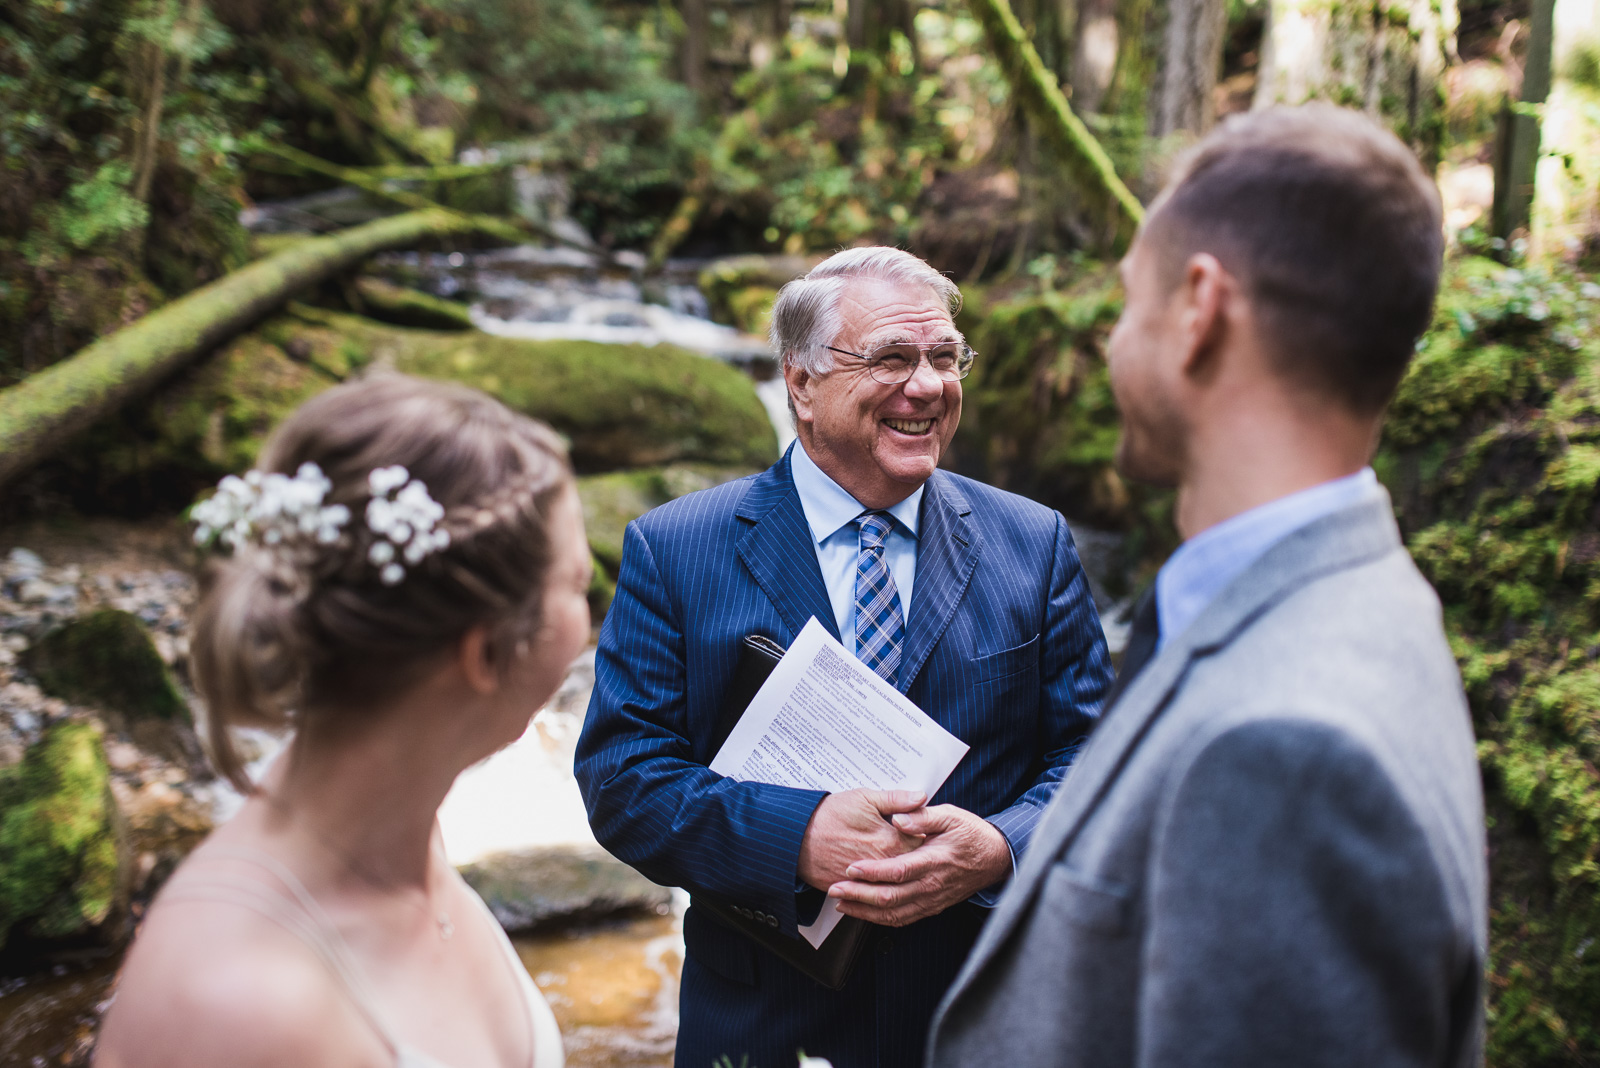 vancouver-island-wedding-photographers-cliff-gilker-park-smugglers-cove-elopement-5.jpg